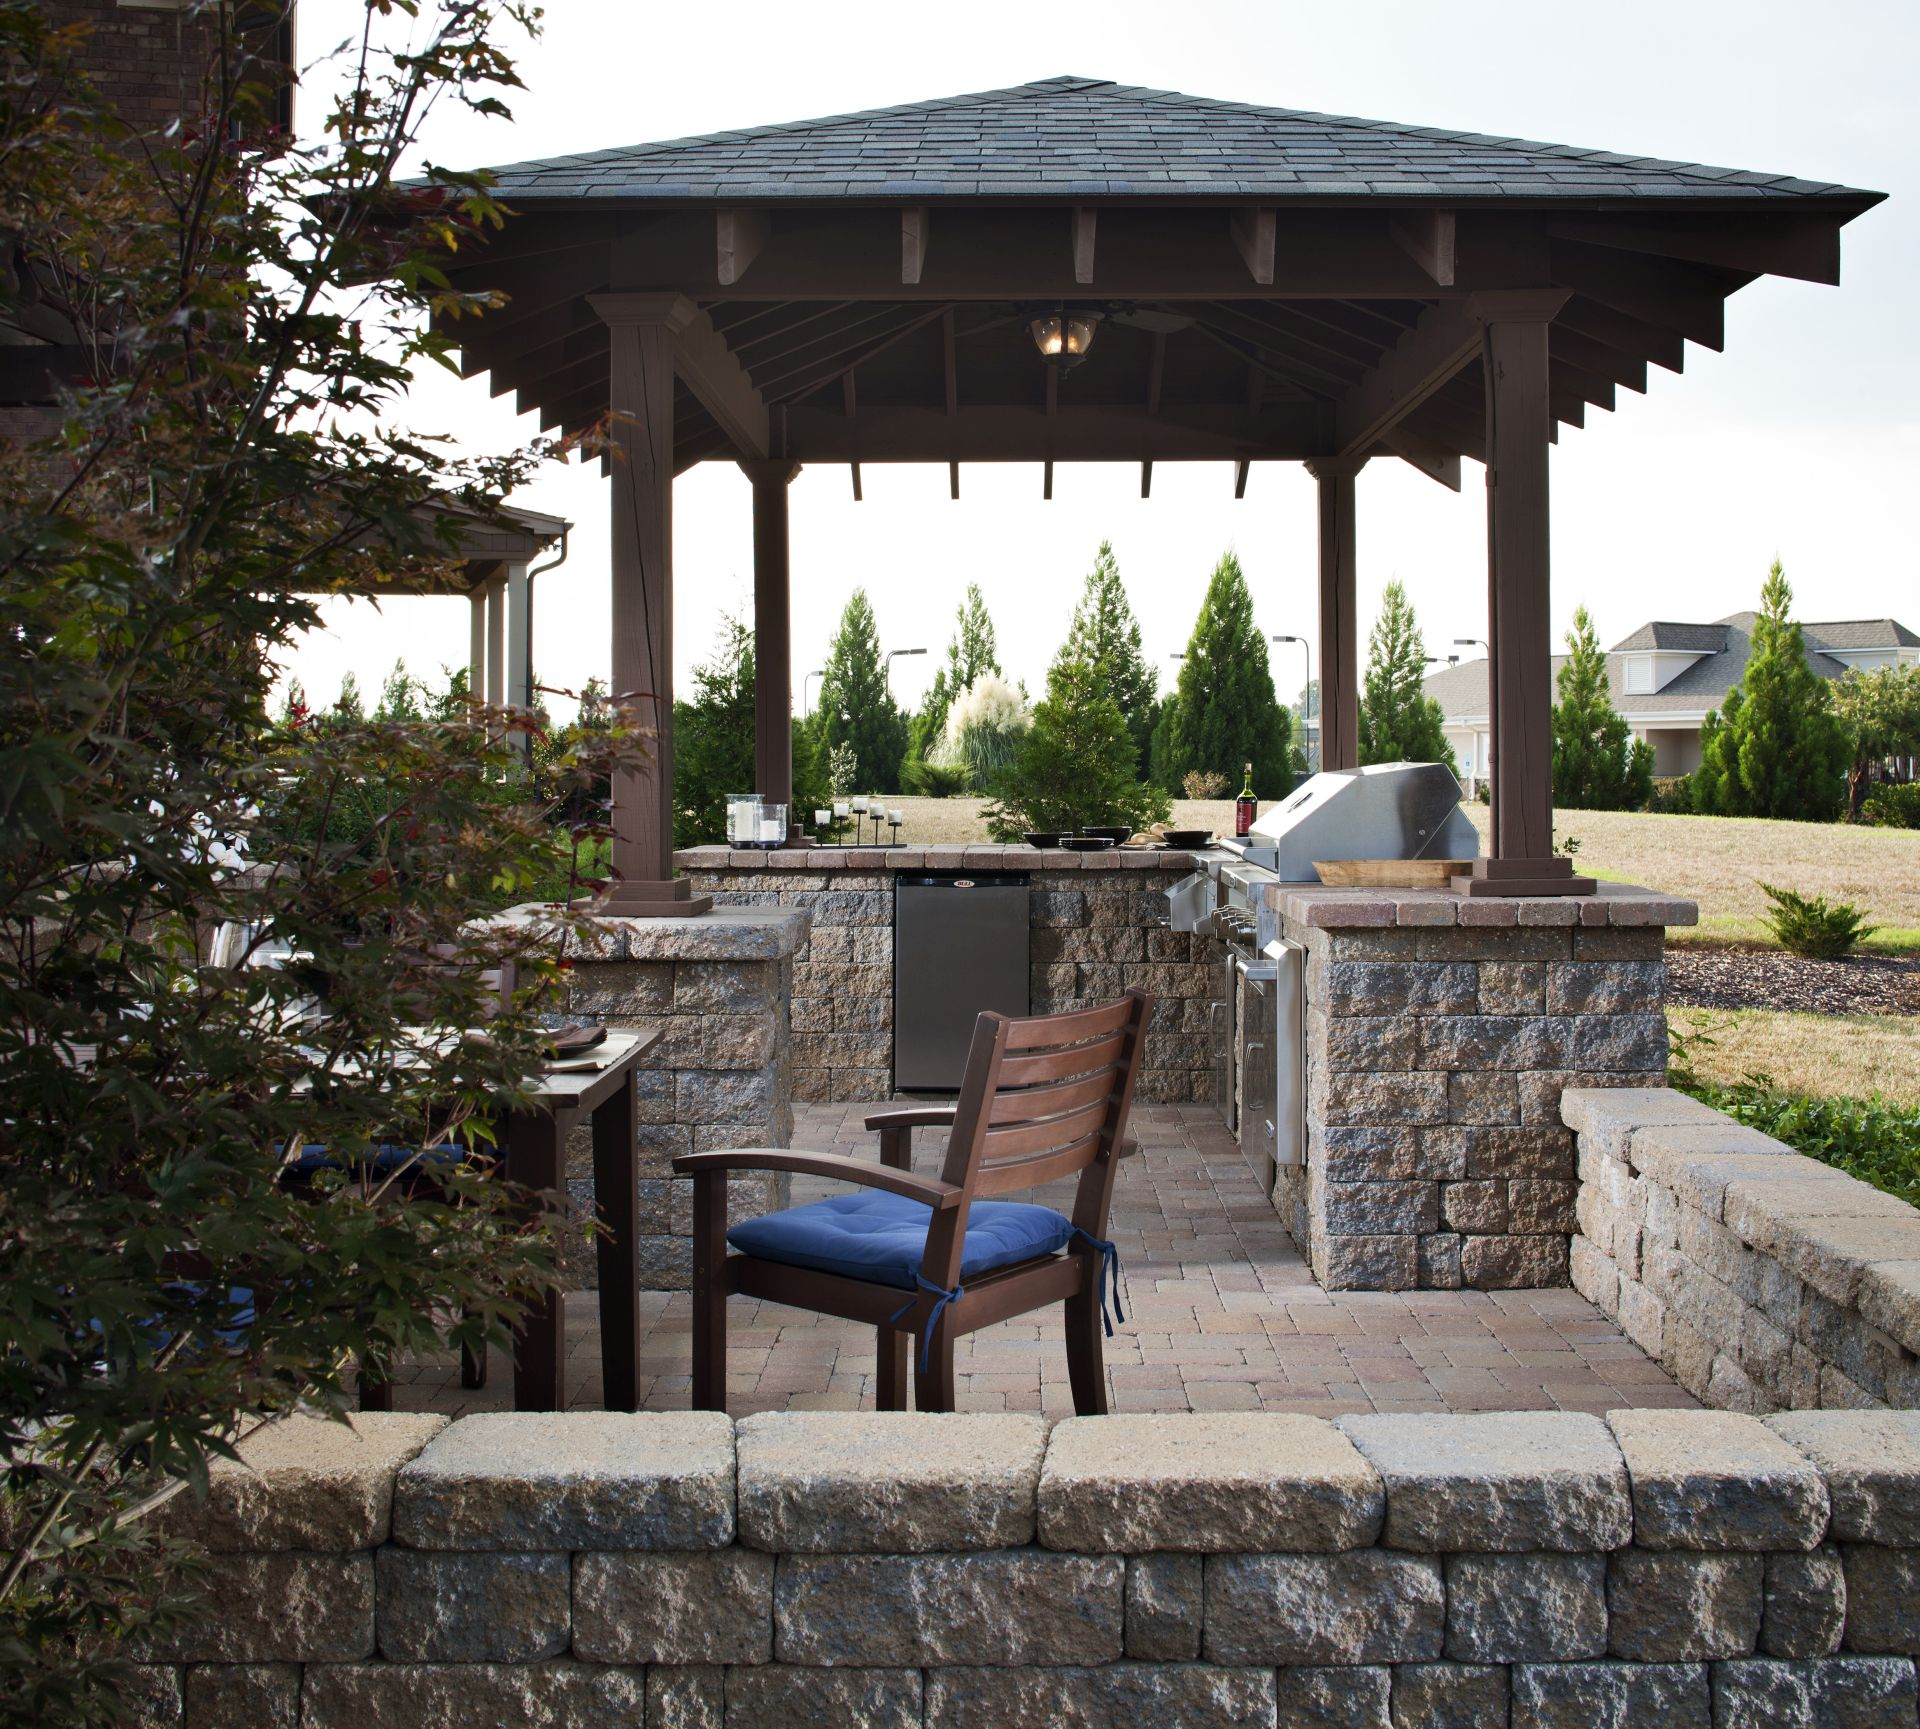 Paving Stone Countertops in Outdoor Kitchen